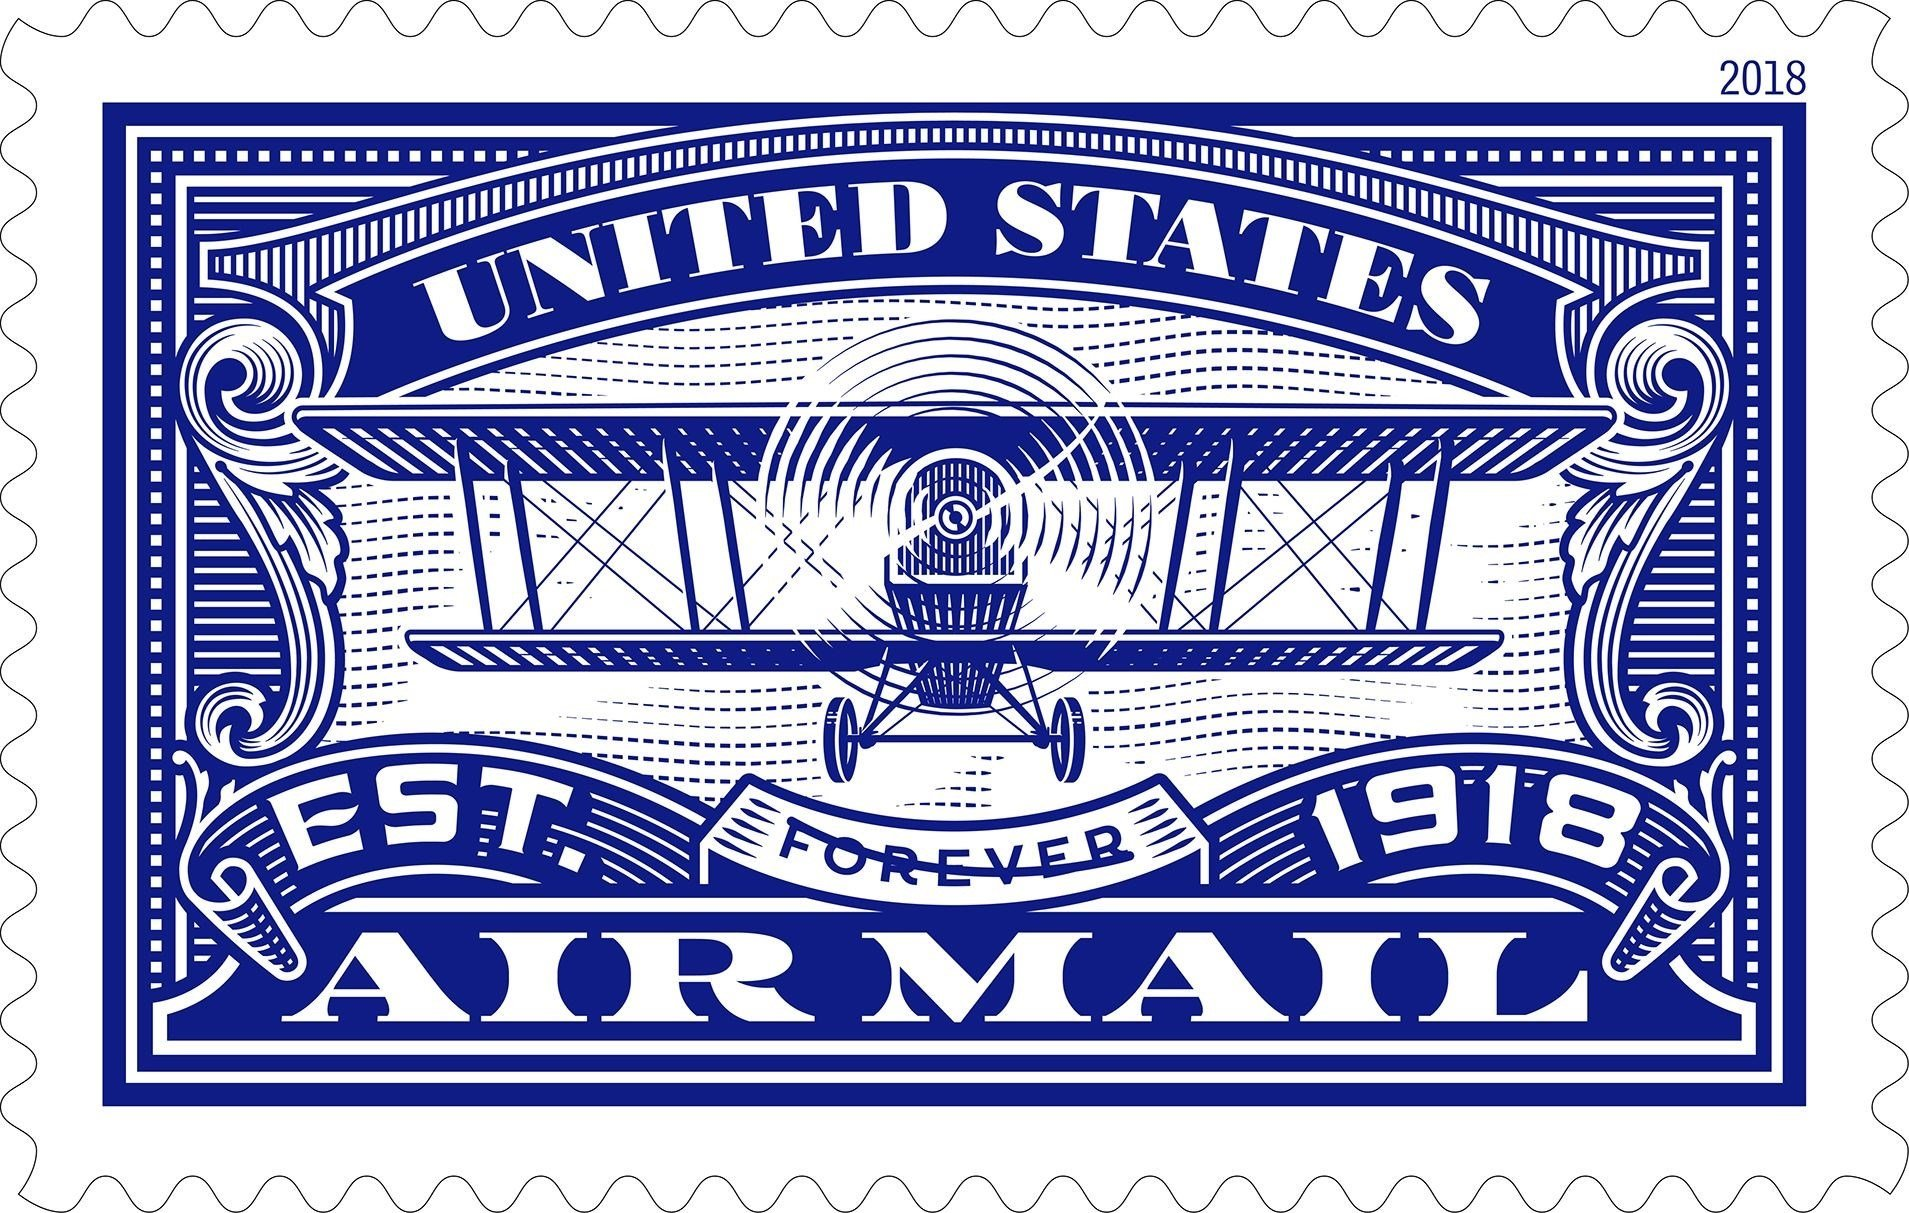 The new stamp honoring 100 years of U.S. Air Mail Service